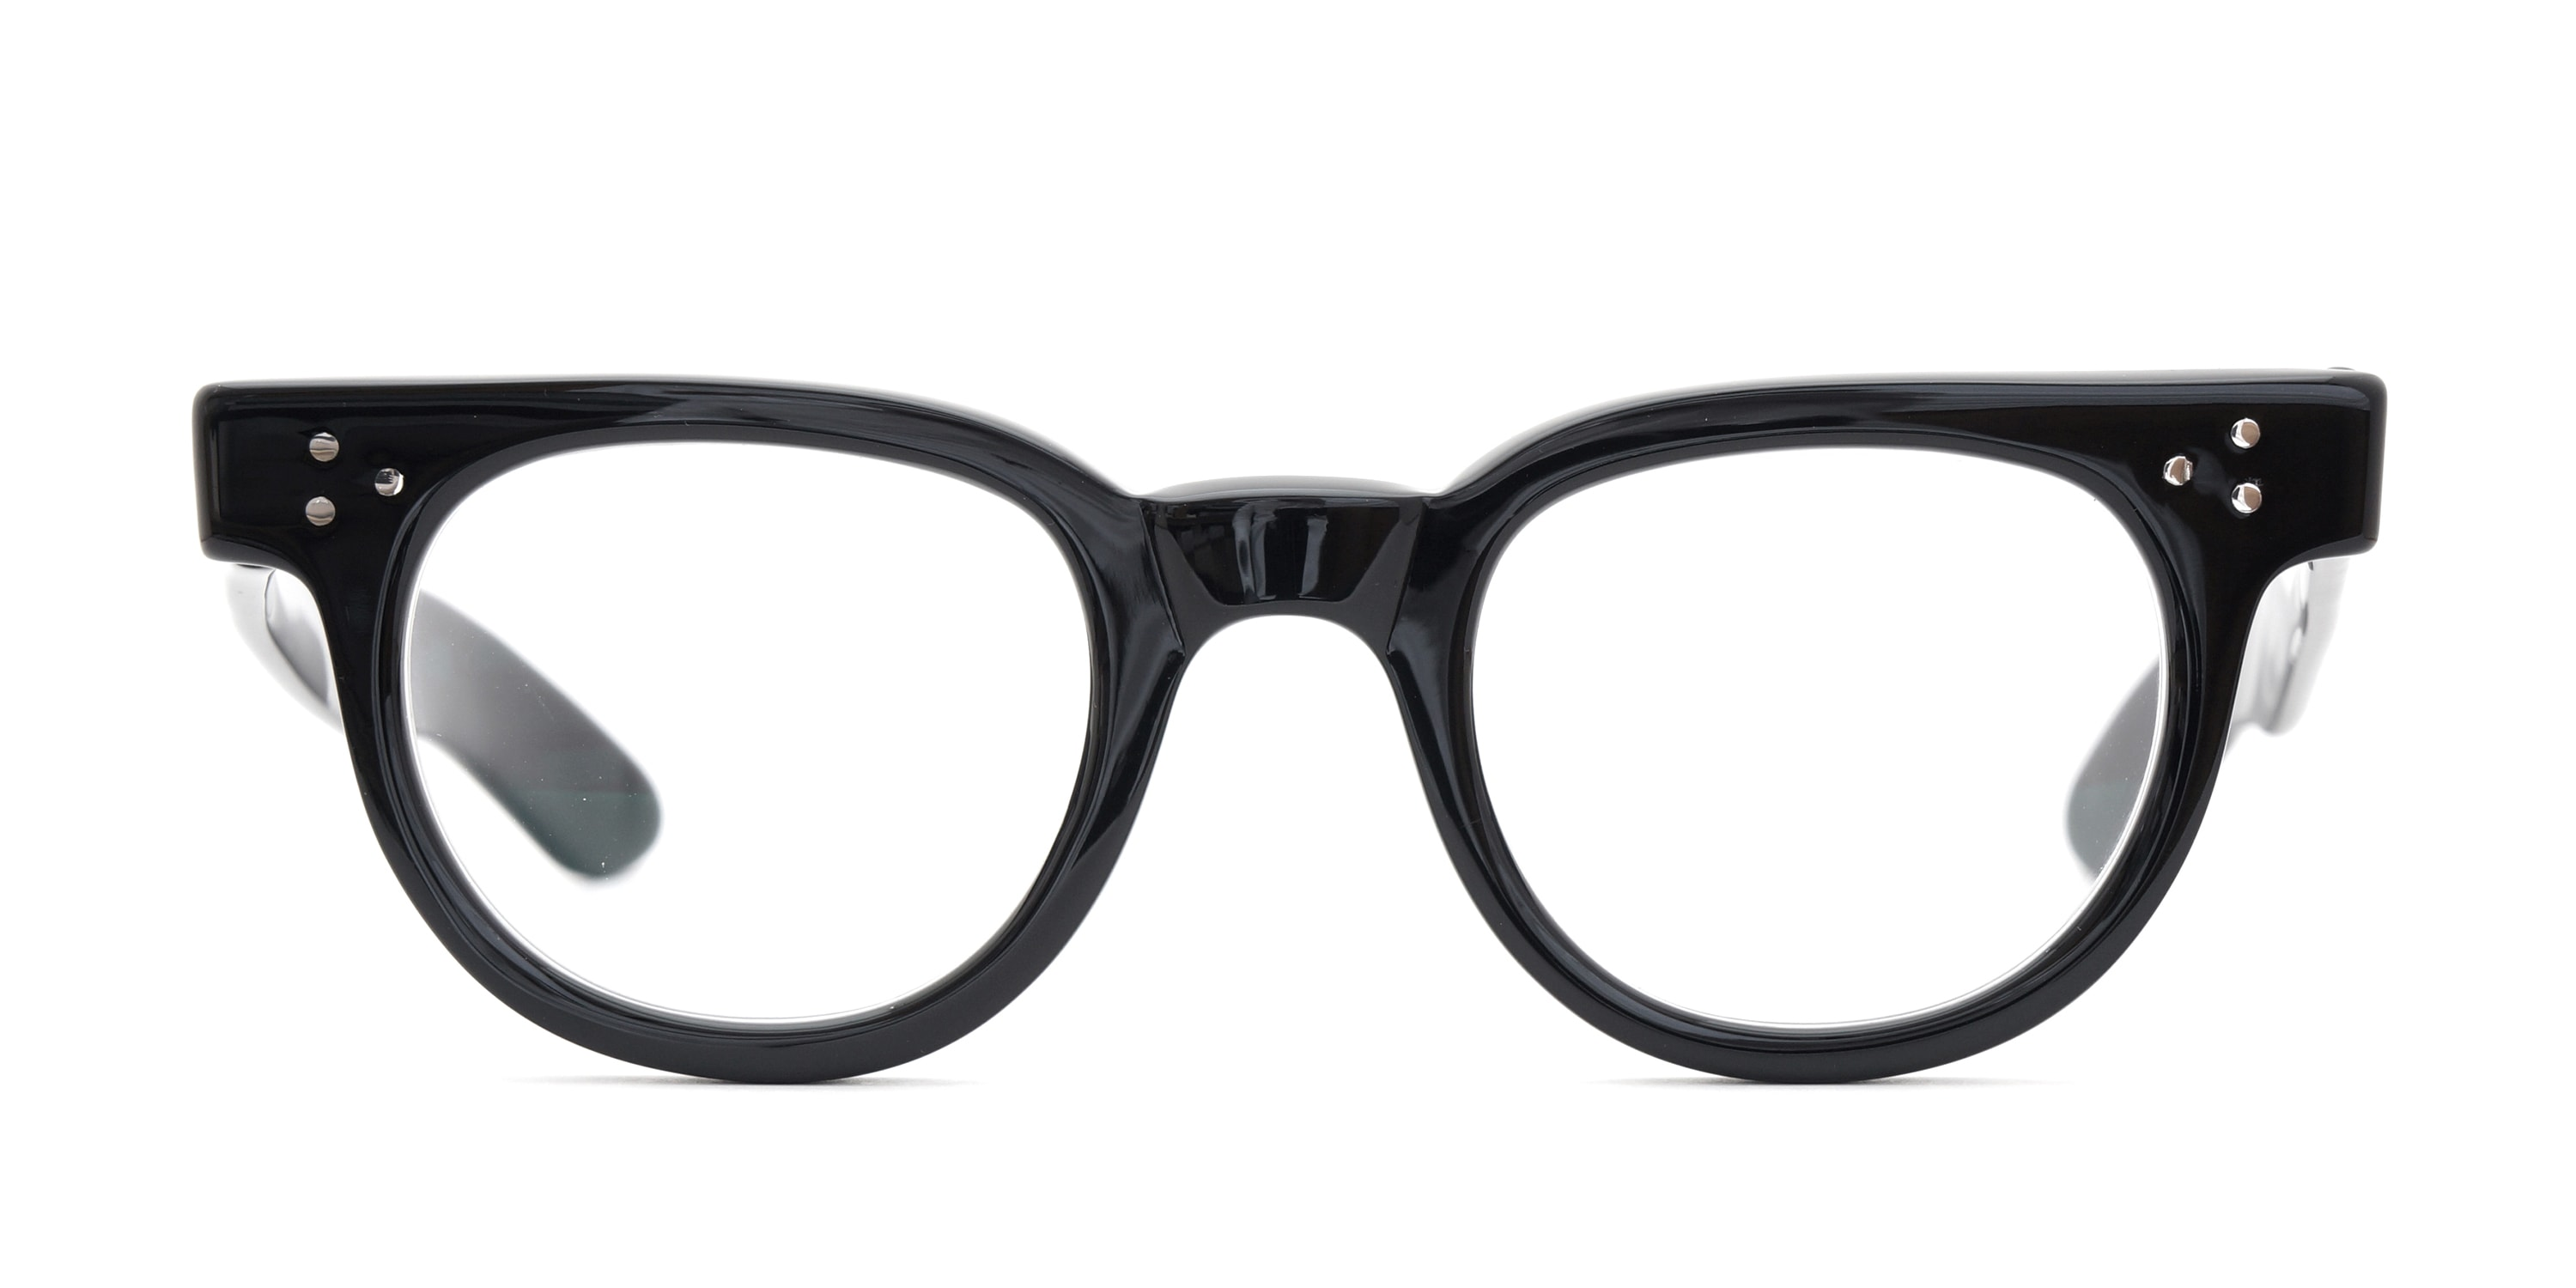 The Spectacle メガネ 1950s-70s TART OPTICAL FDR (FRAME USA) BLACK 44-24 イメージ2